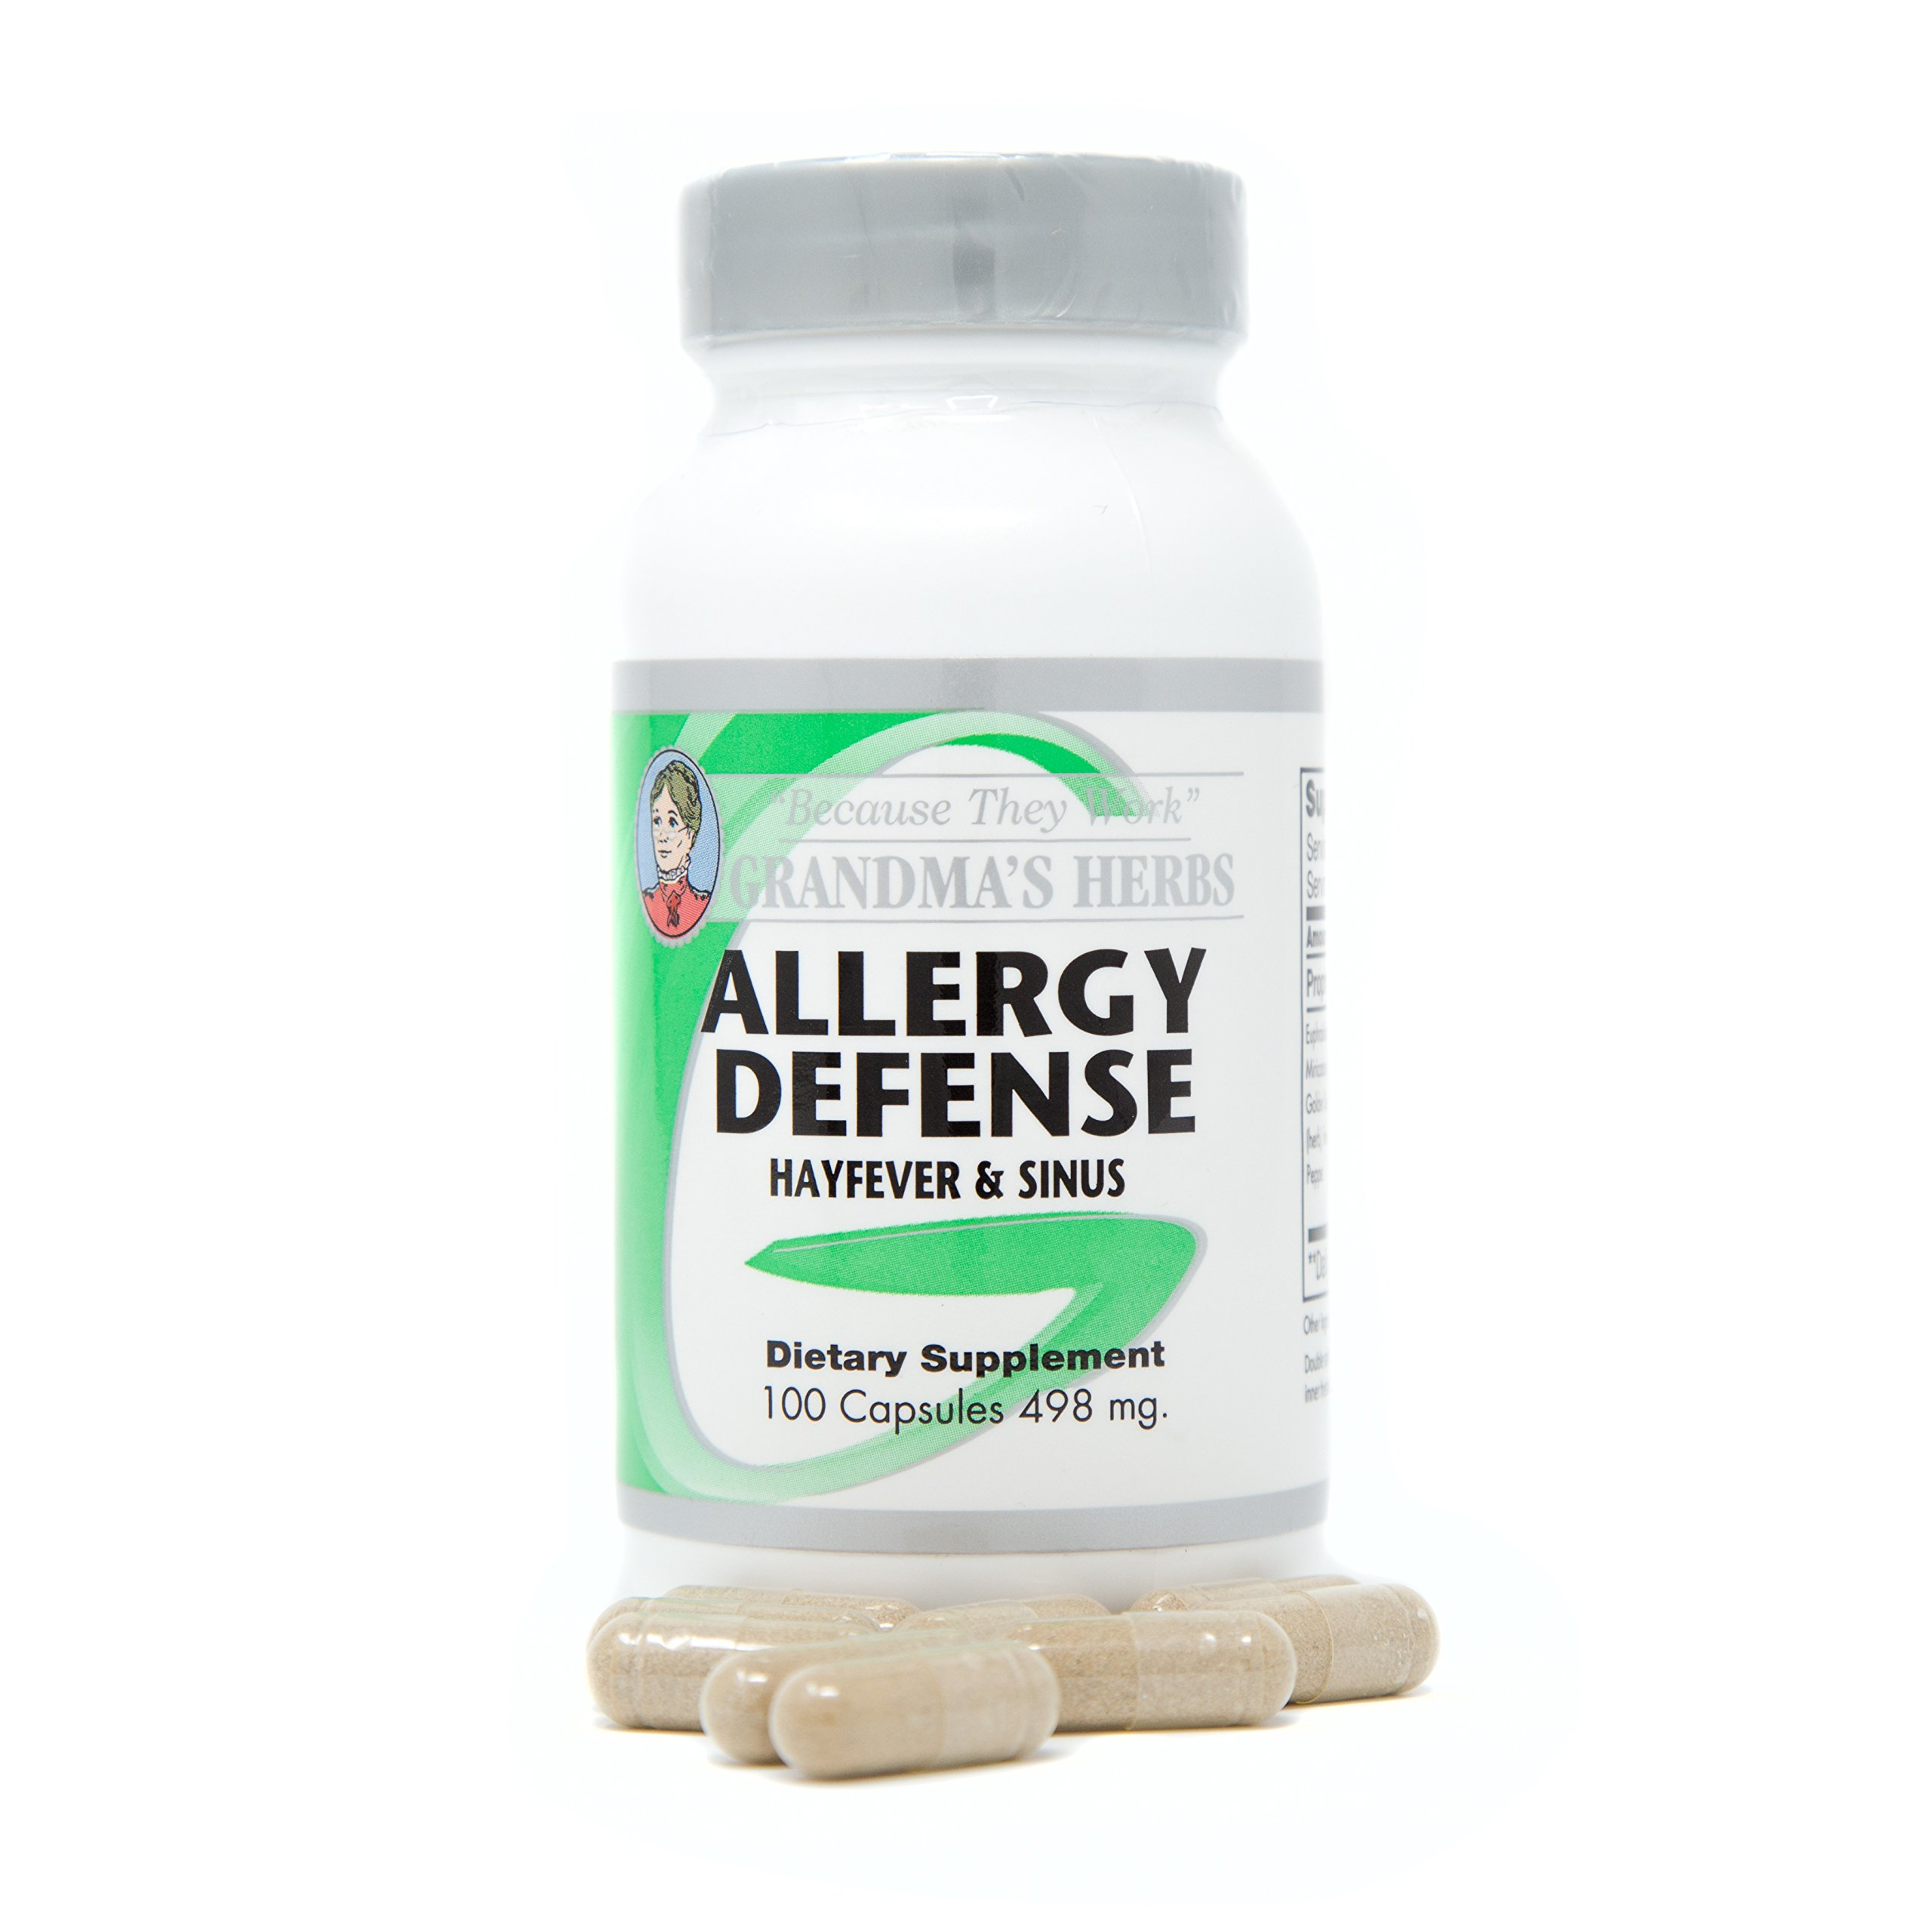 Allergy Defense - All Natural Herbal Remedy for Allergies - 100 Capsules